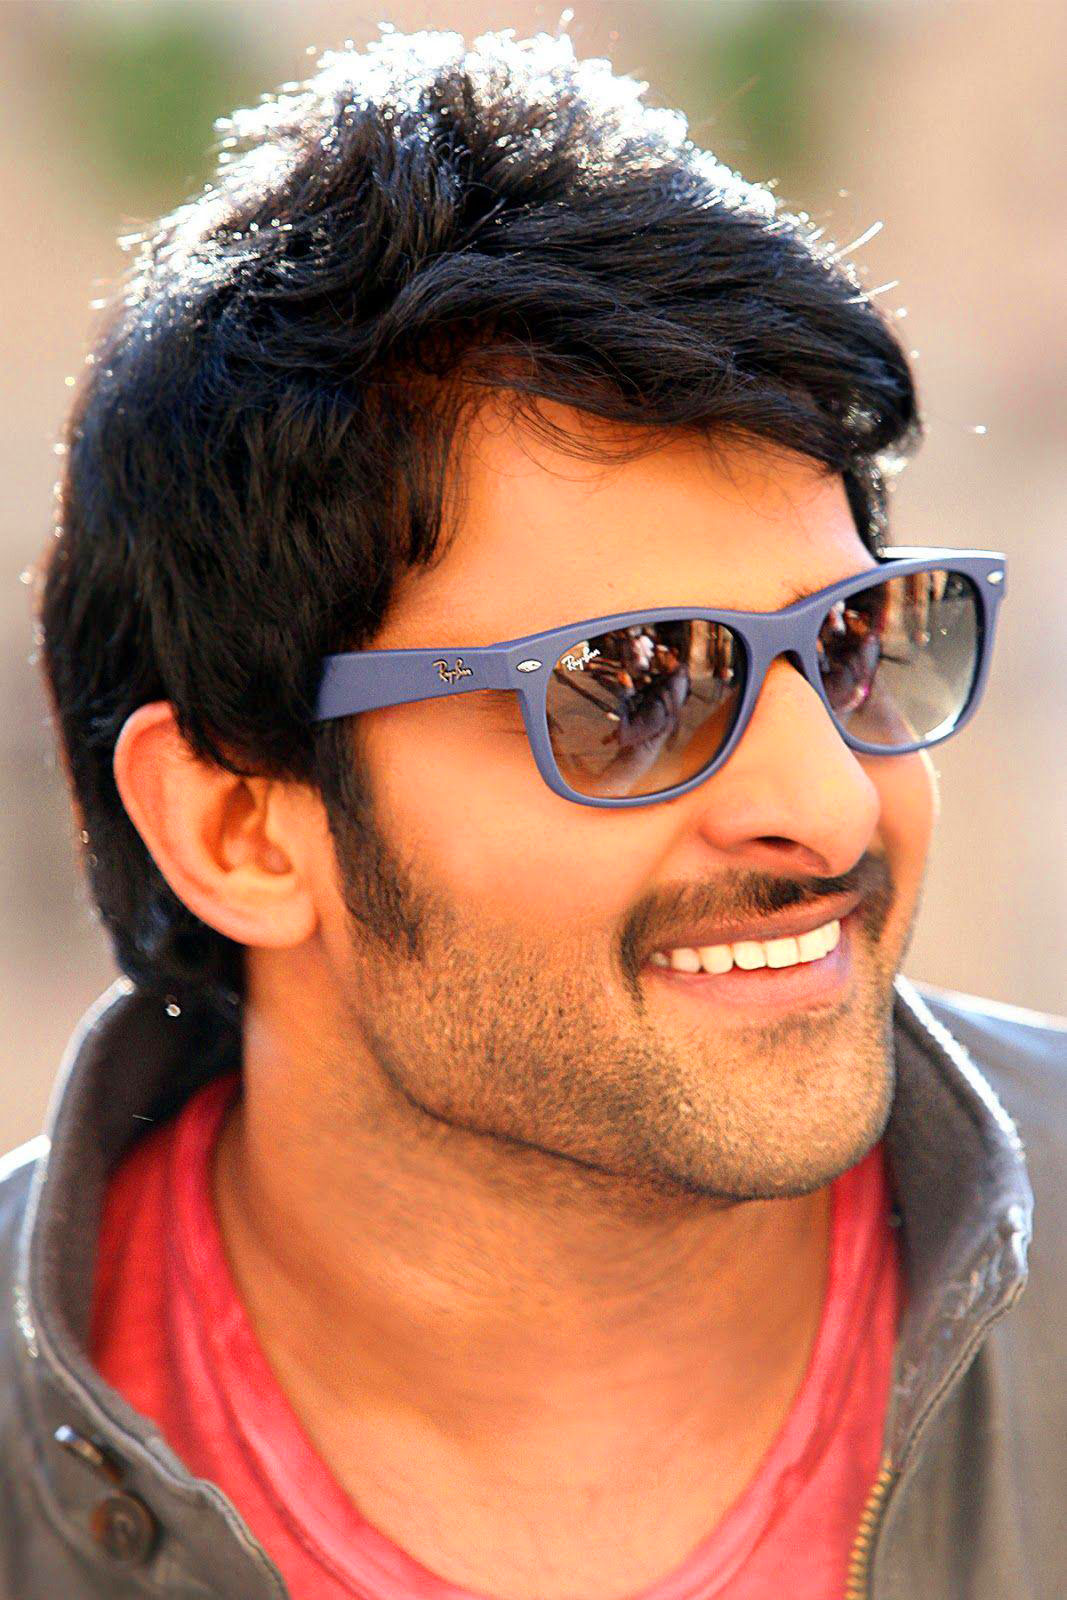 Latest Superstar Prabhas Images photo for whatsapp